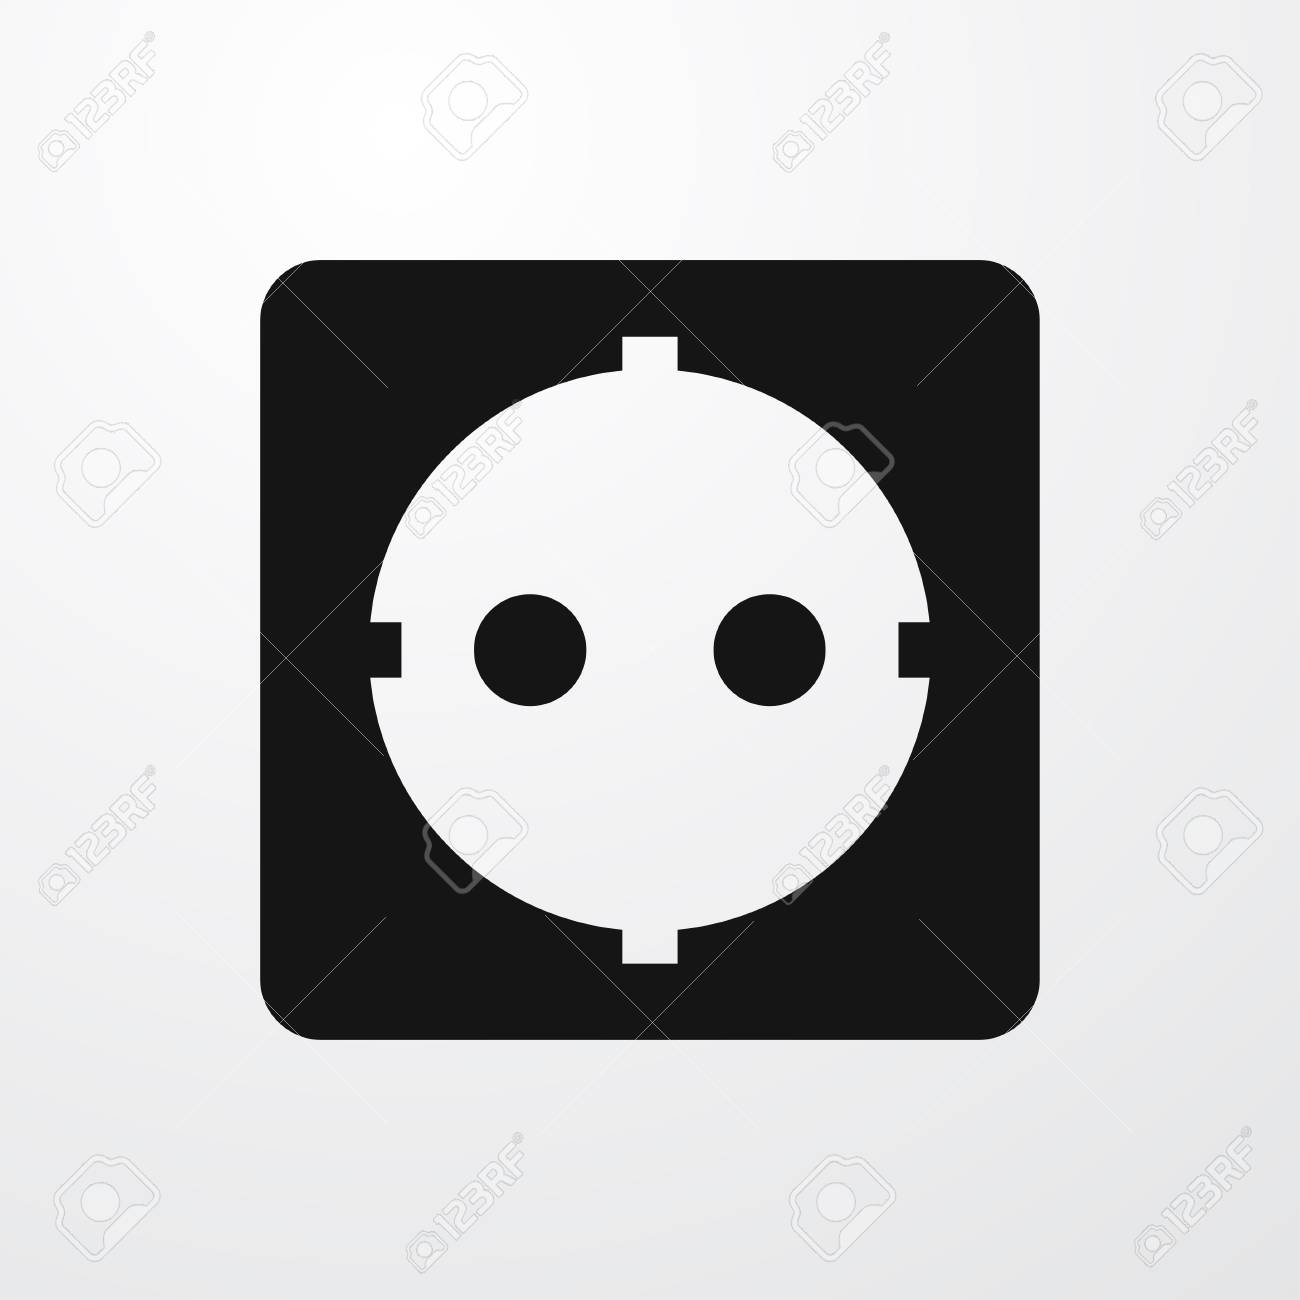 Power Socket Icon Illustration Isolated Vector Sign Symbol Royalty